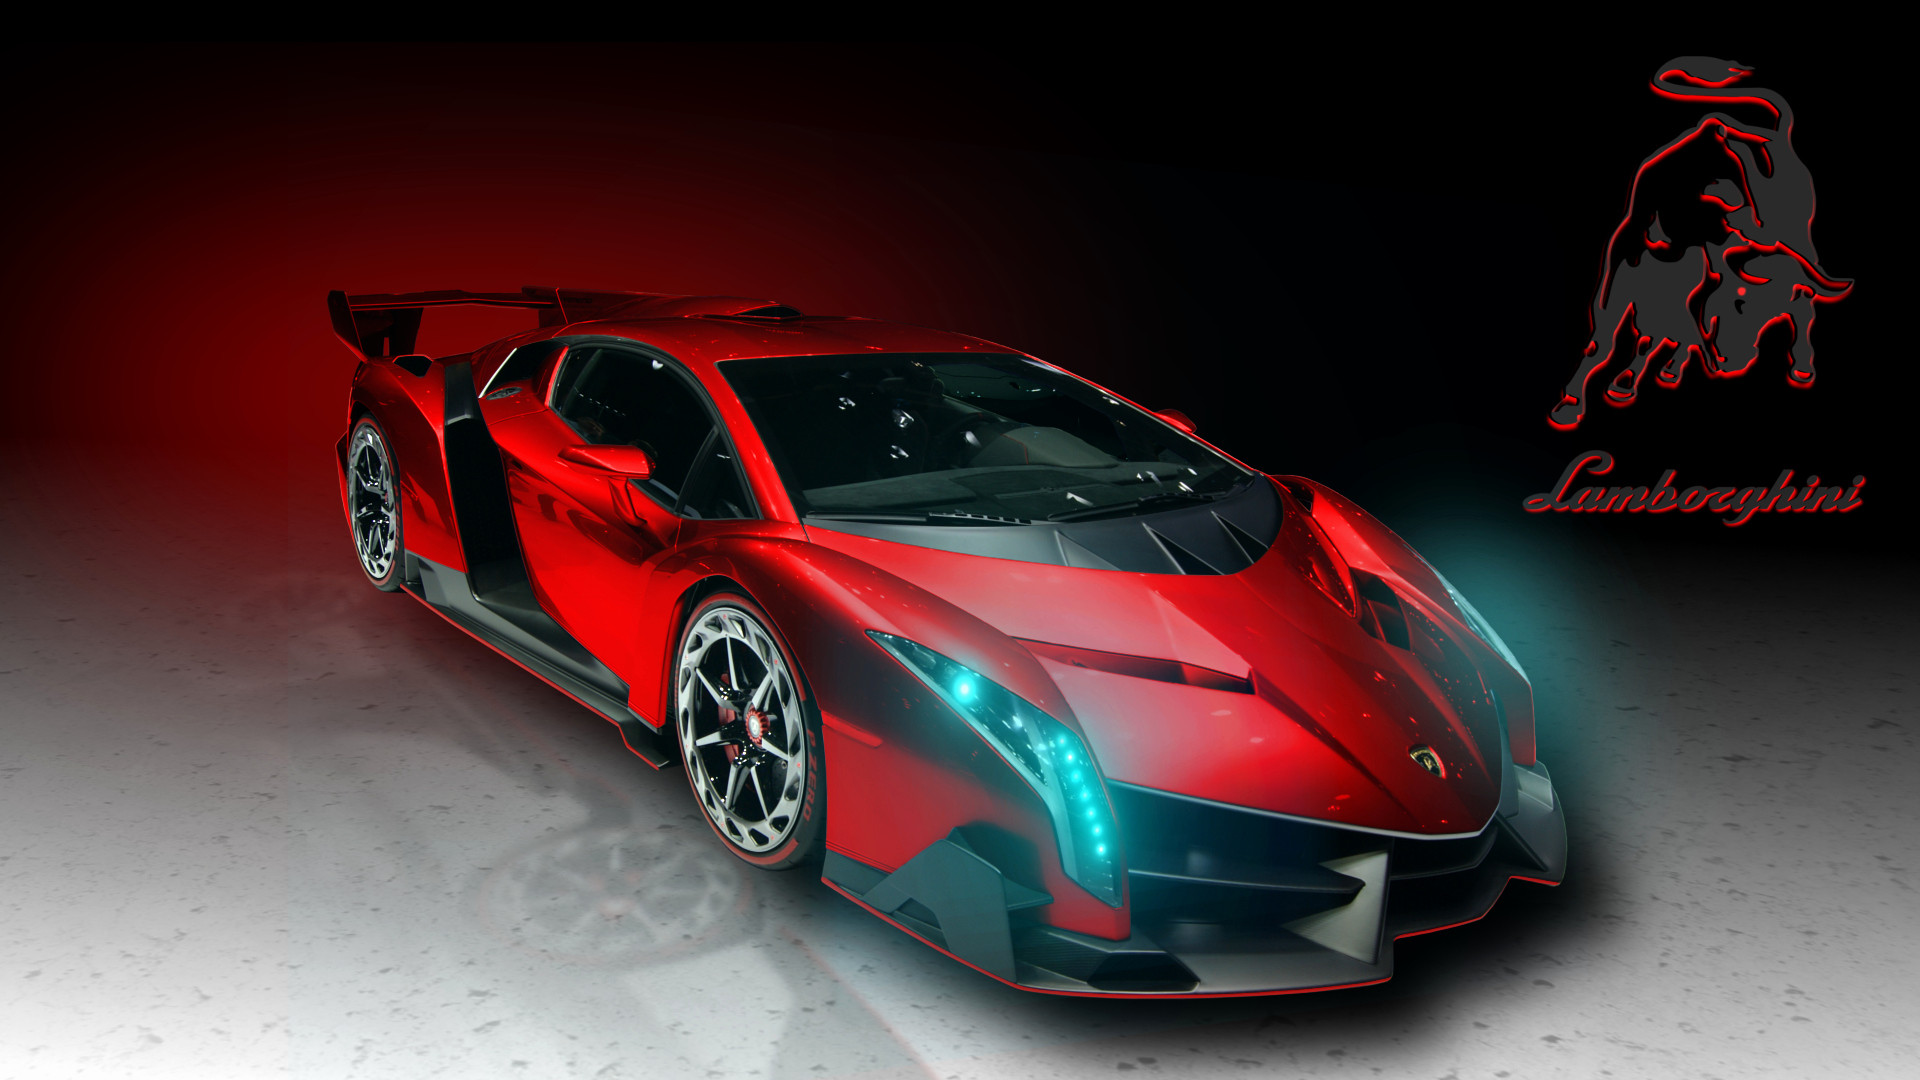 Wallpaper Of Sports Cars 70 Images